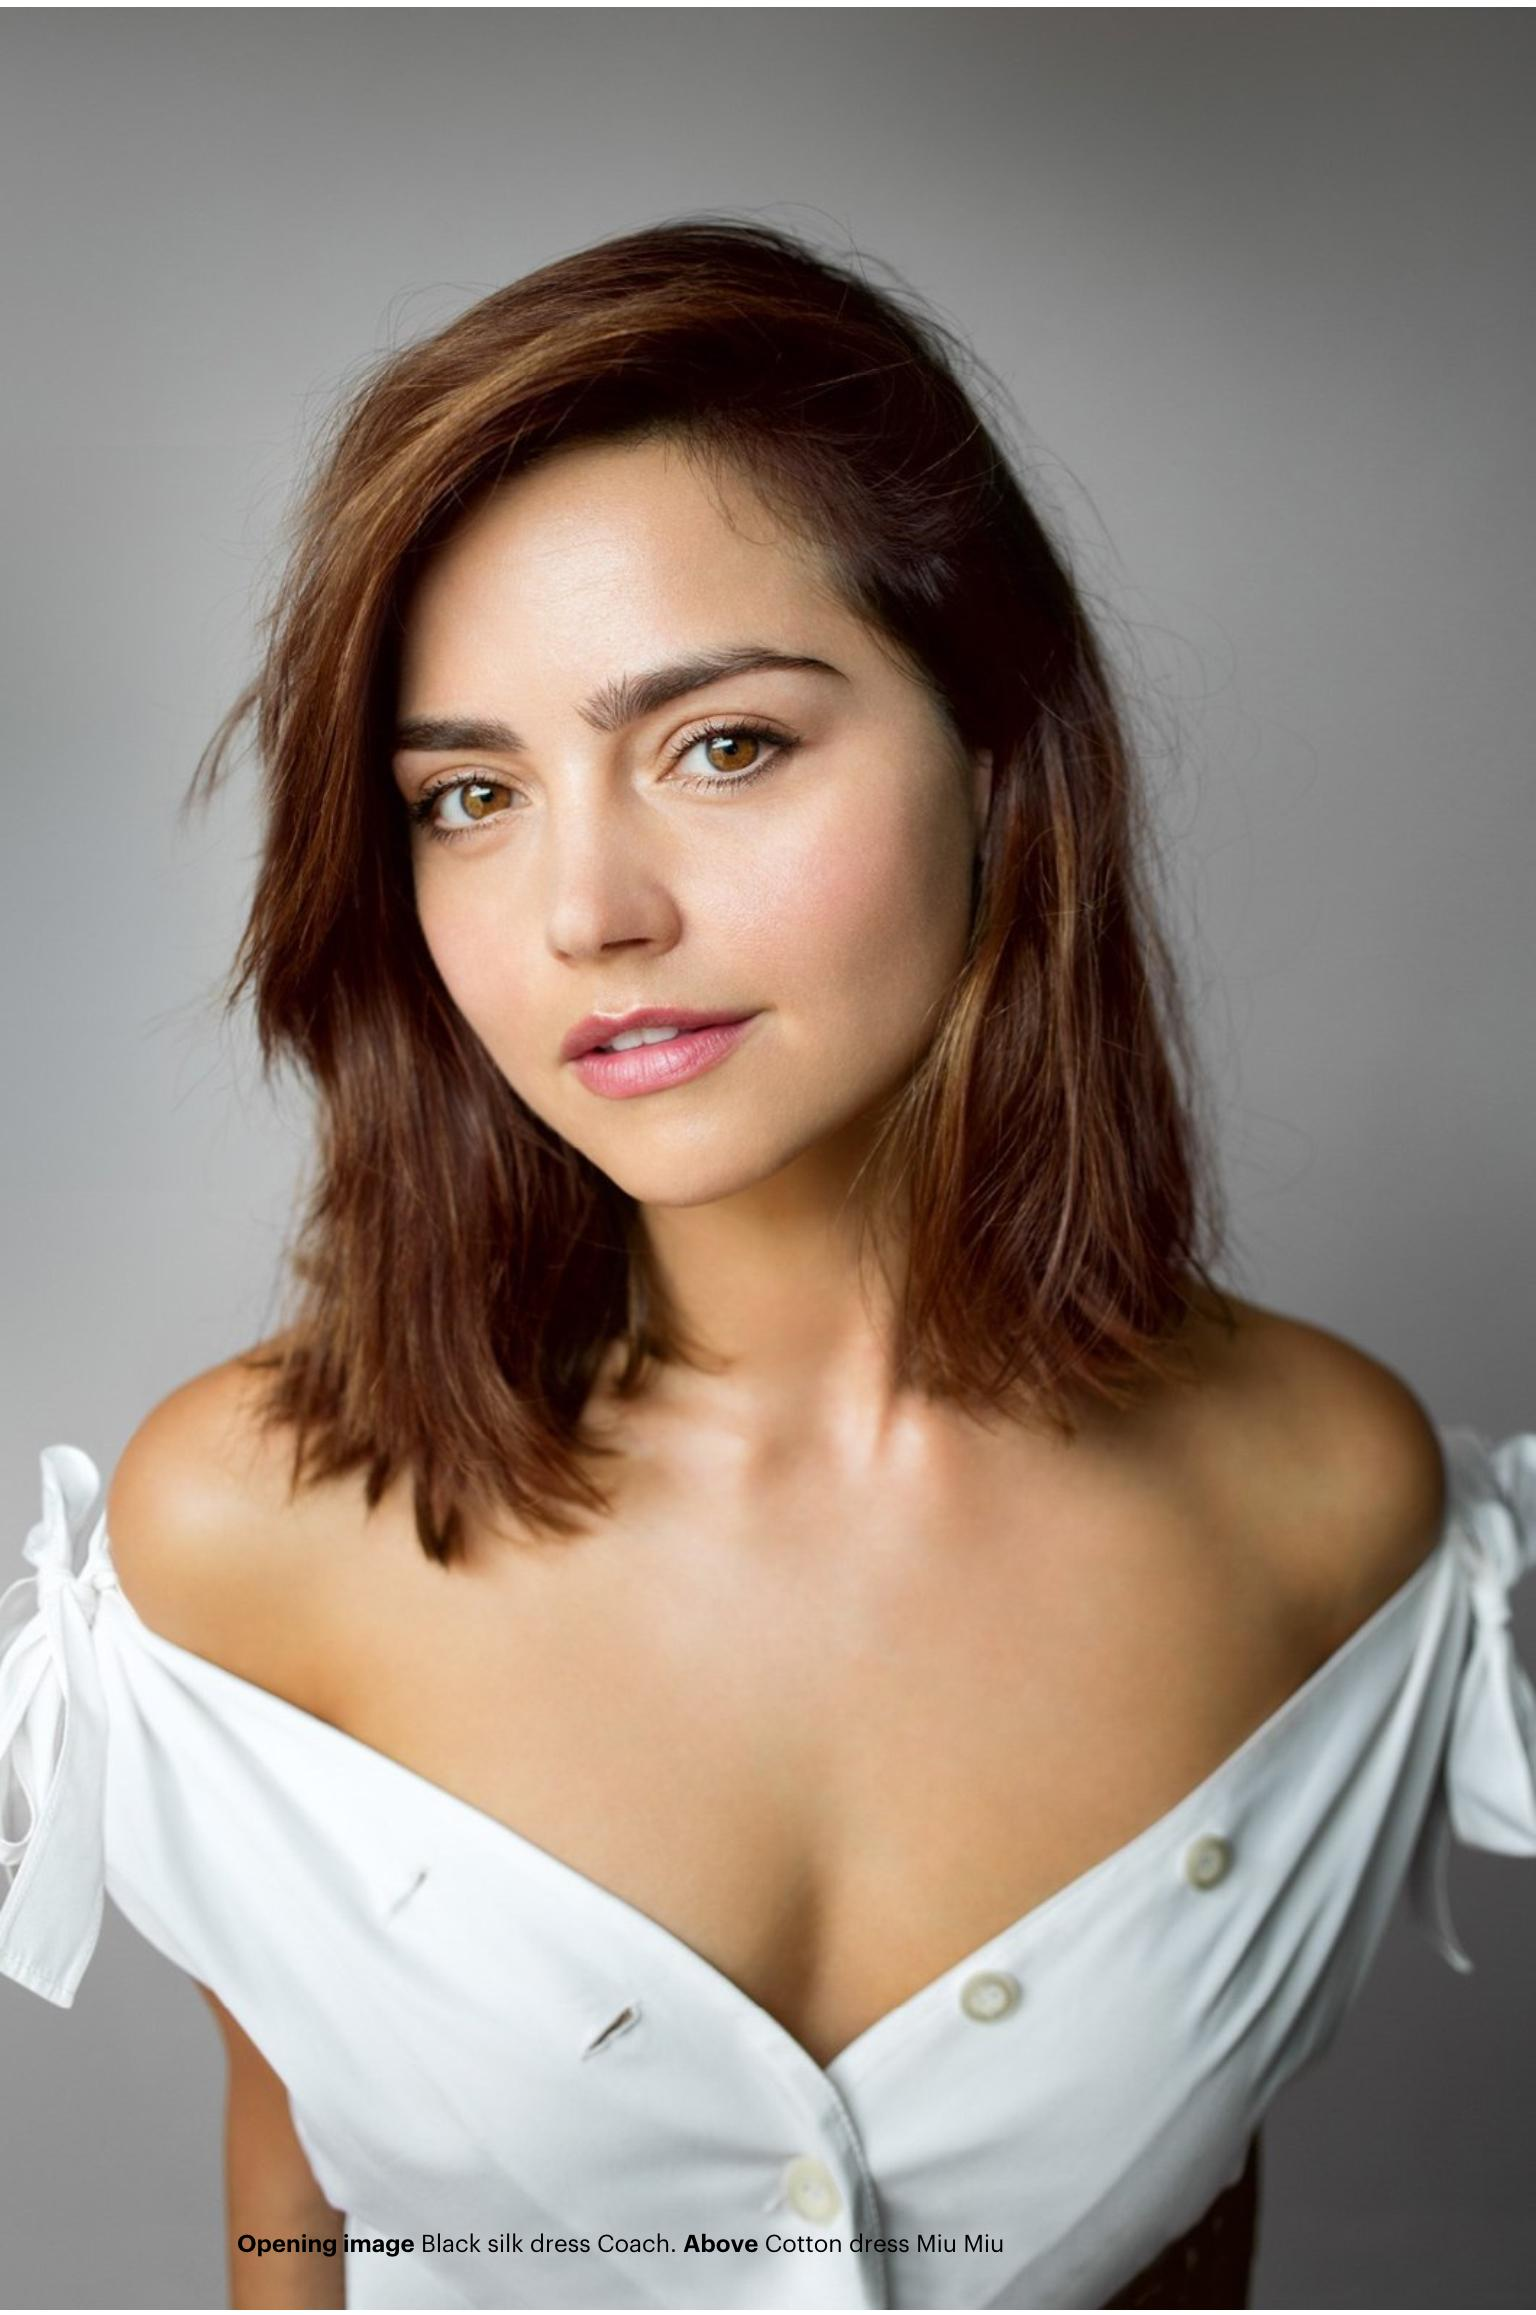 jenna coleman sexy cleavage